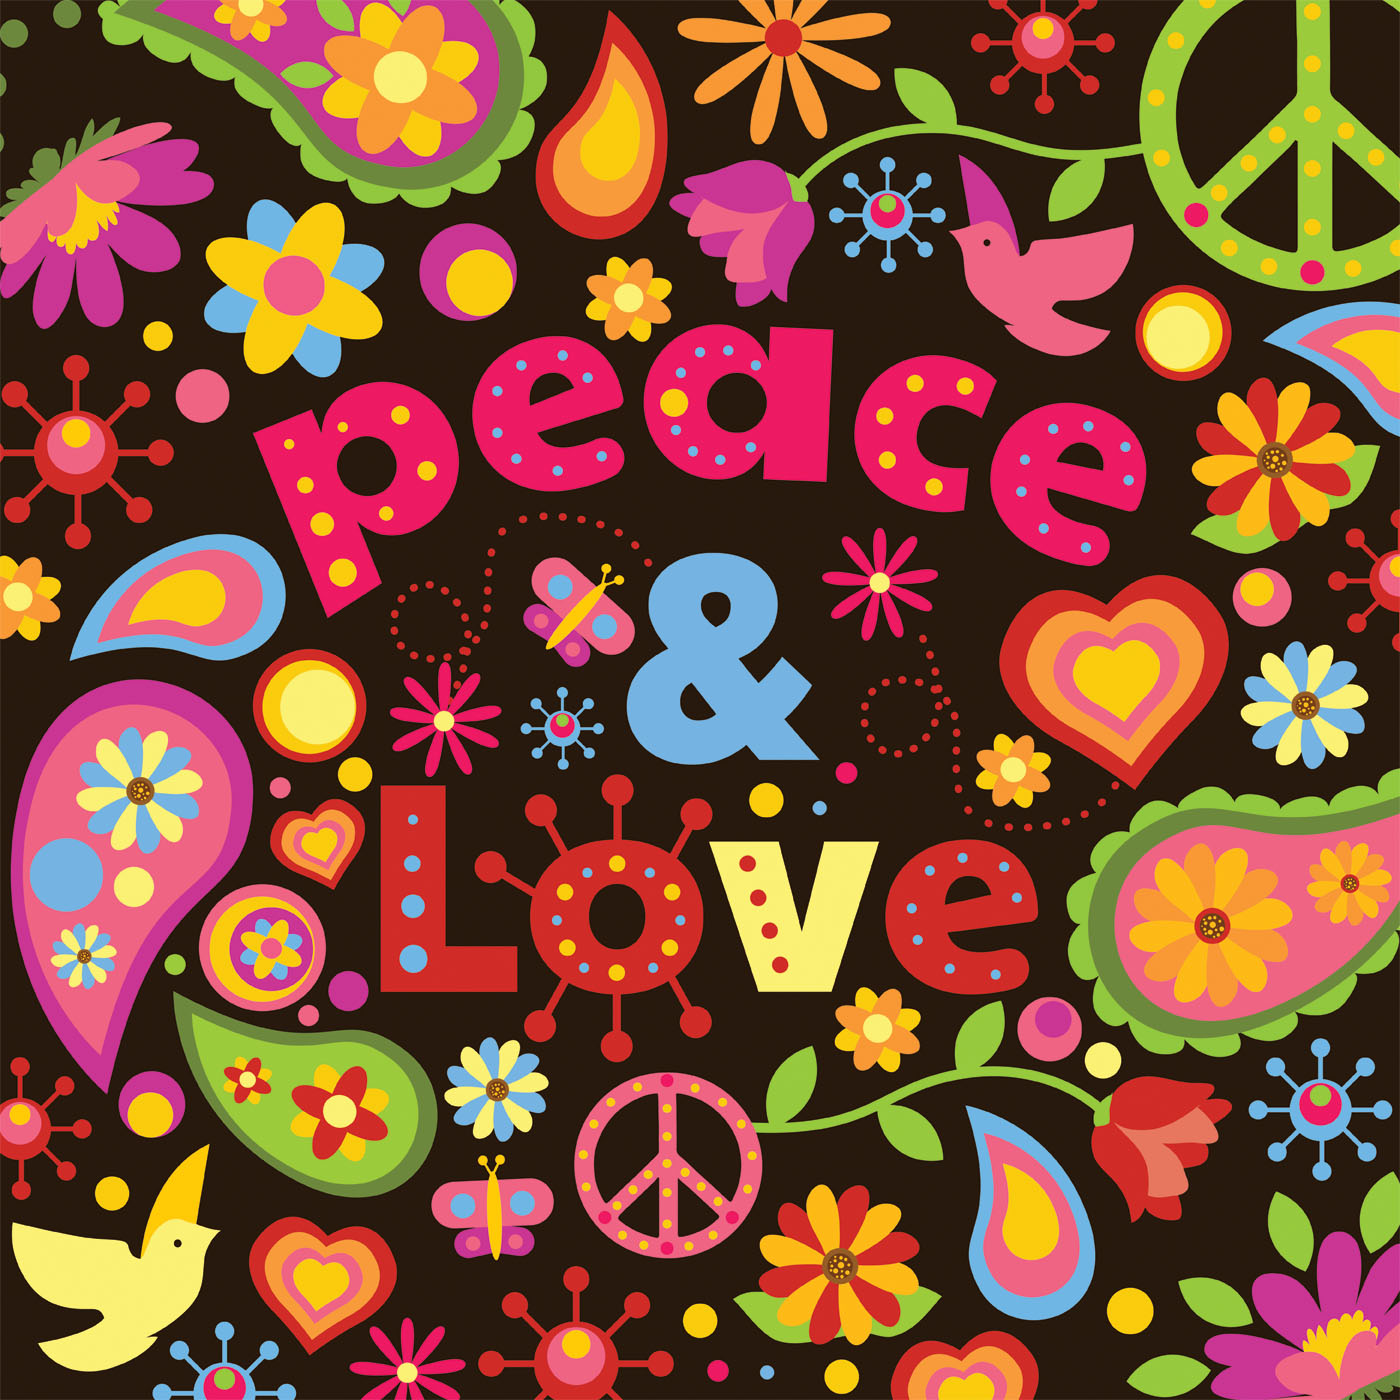 Wallpaper Of Peace: Peace And Love Vector Design